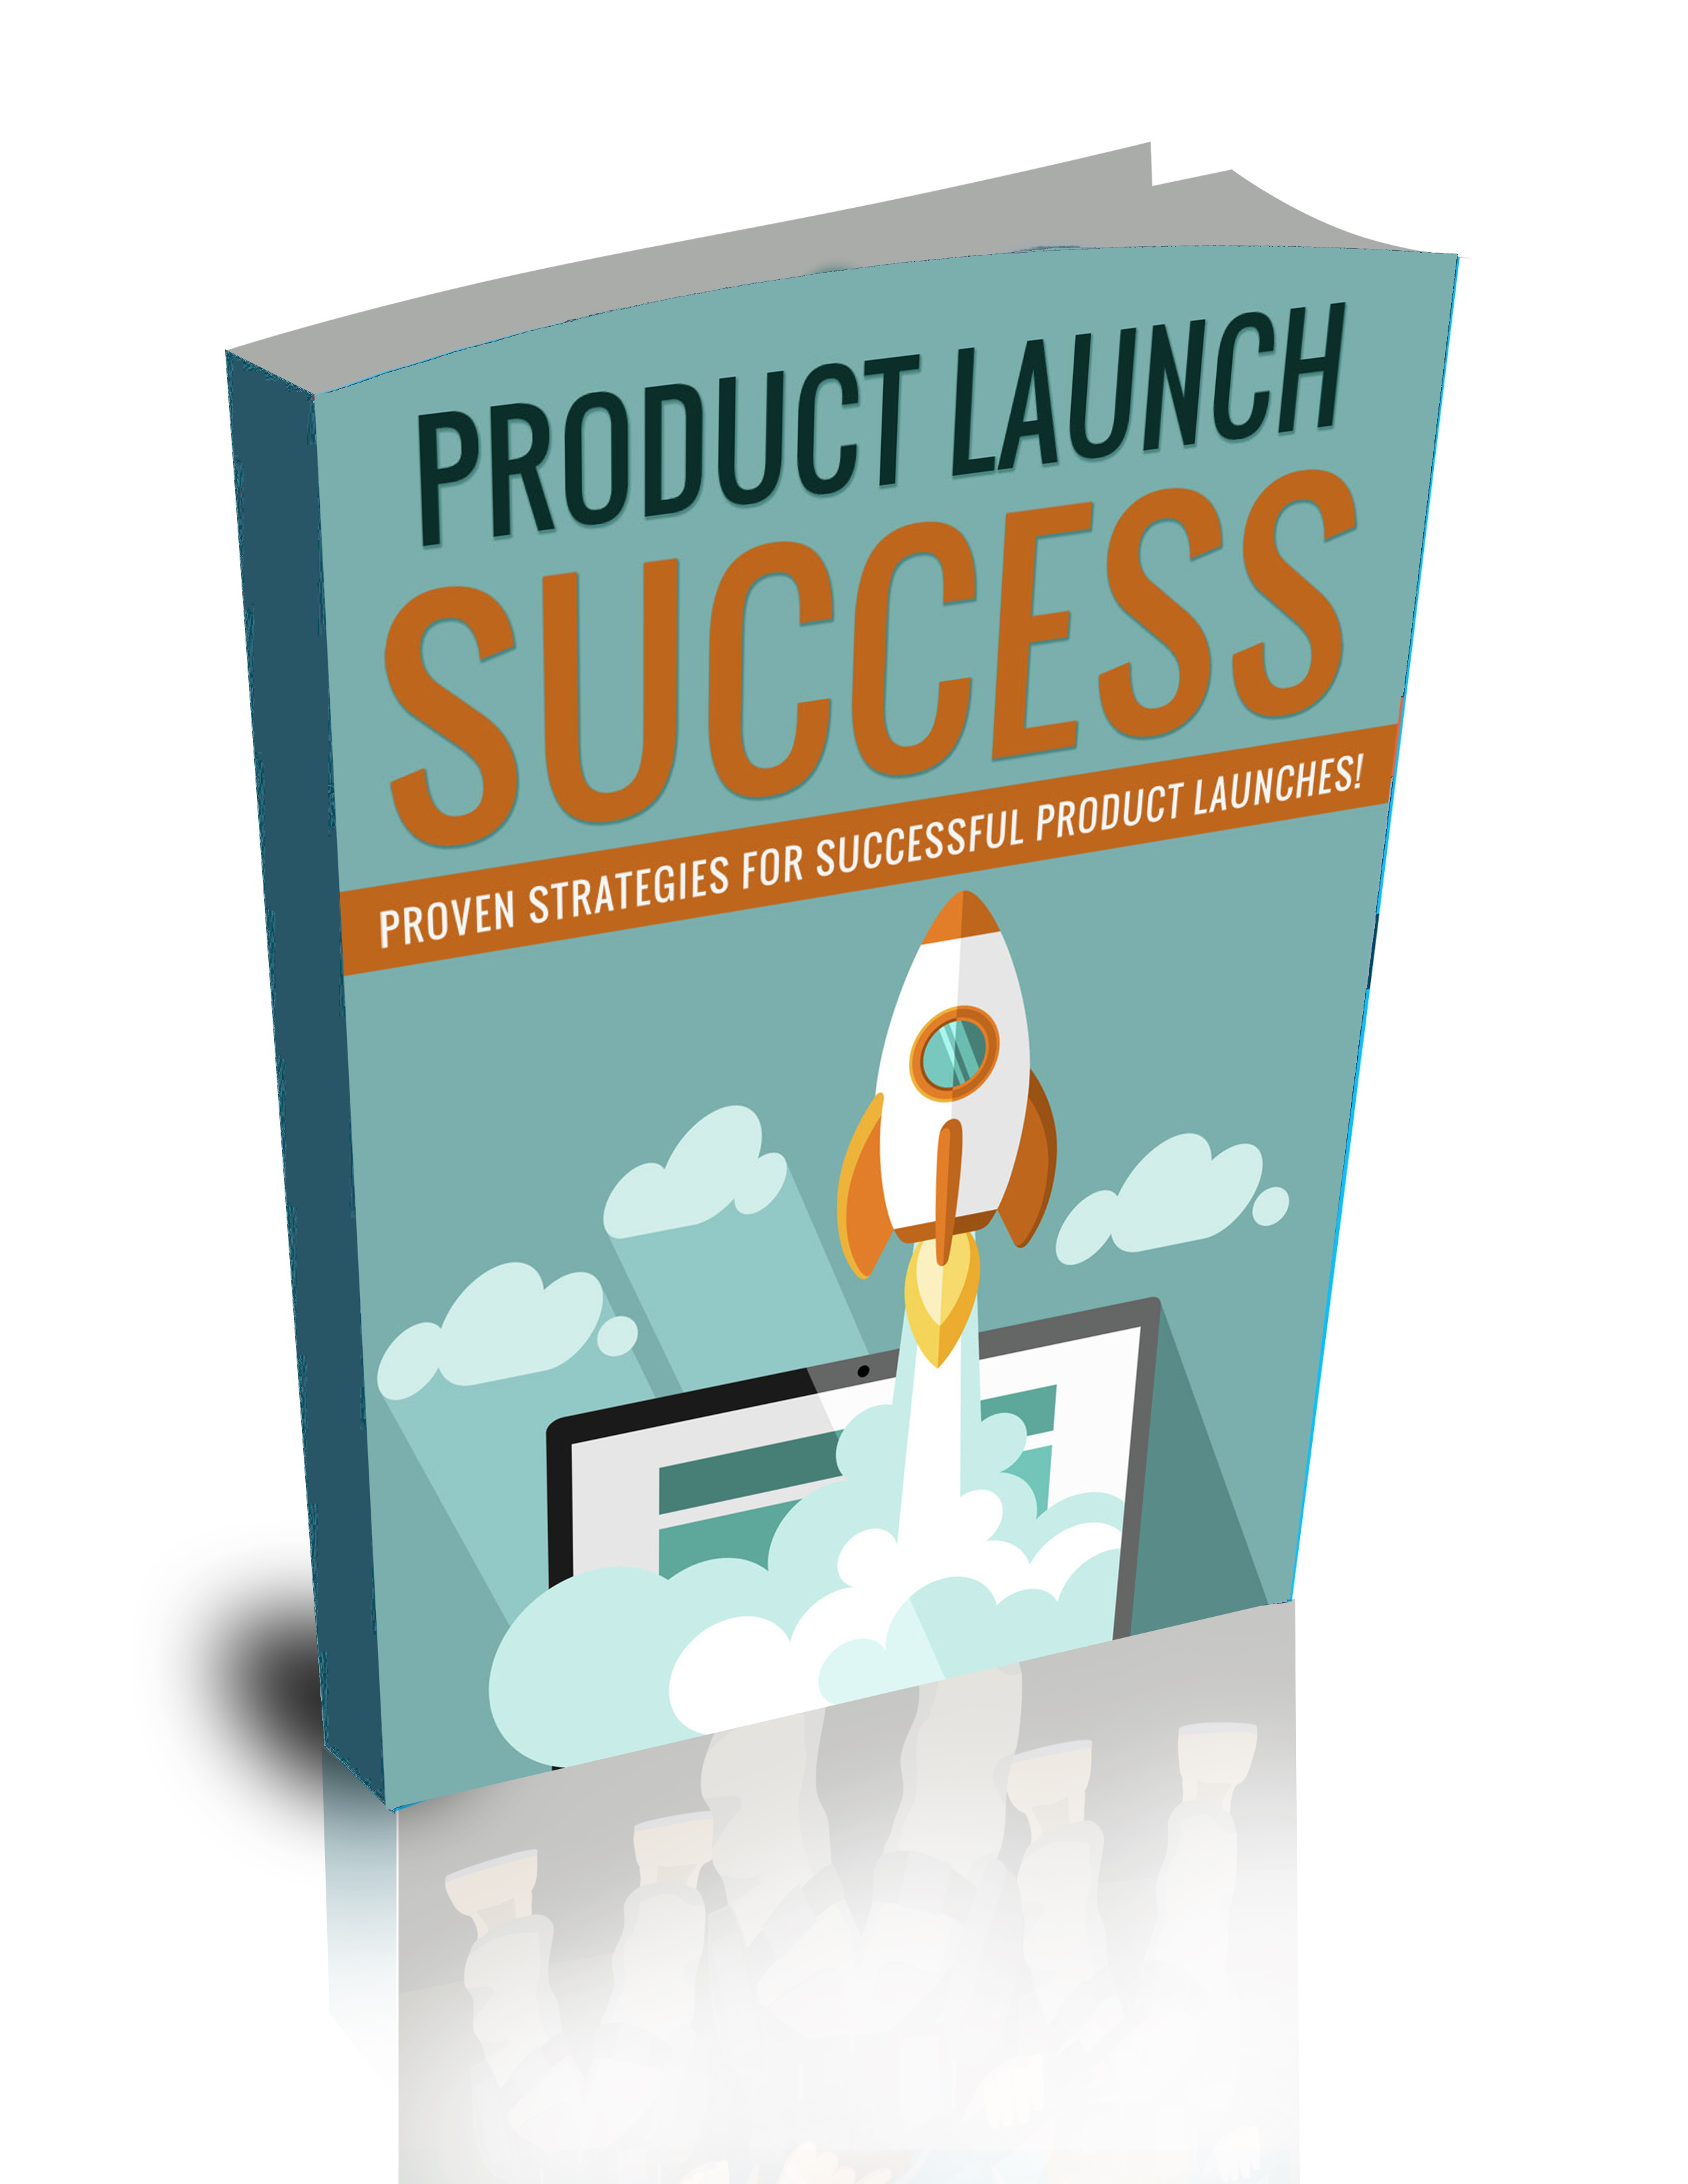 ProductLaunchSuccess